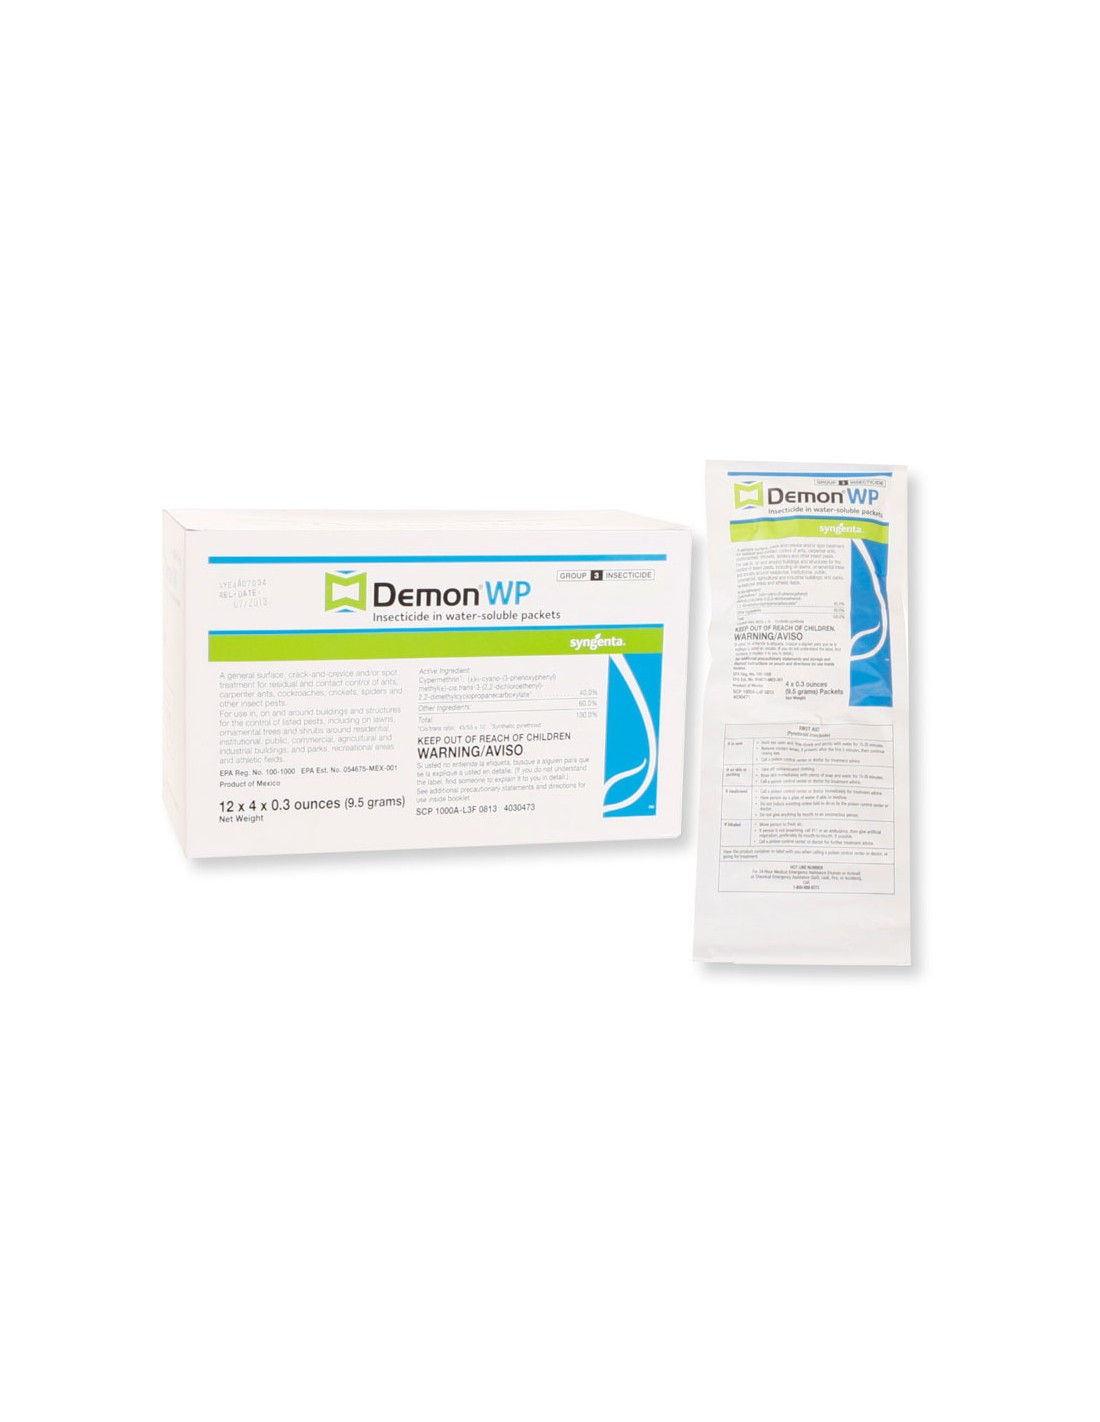 After application of DemonWP for web worms can I then water my yard